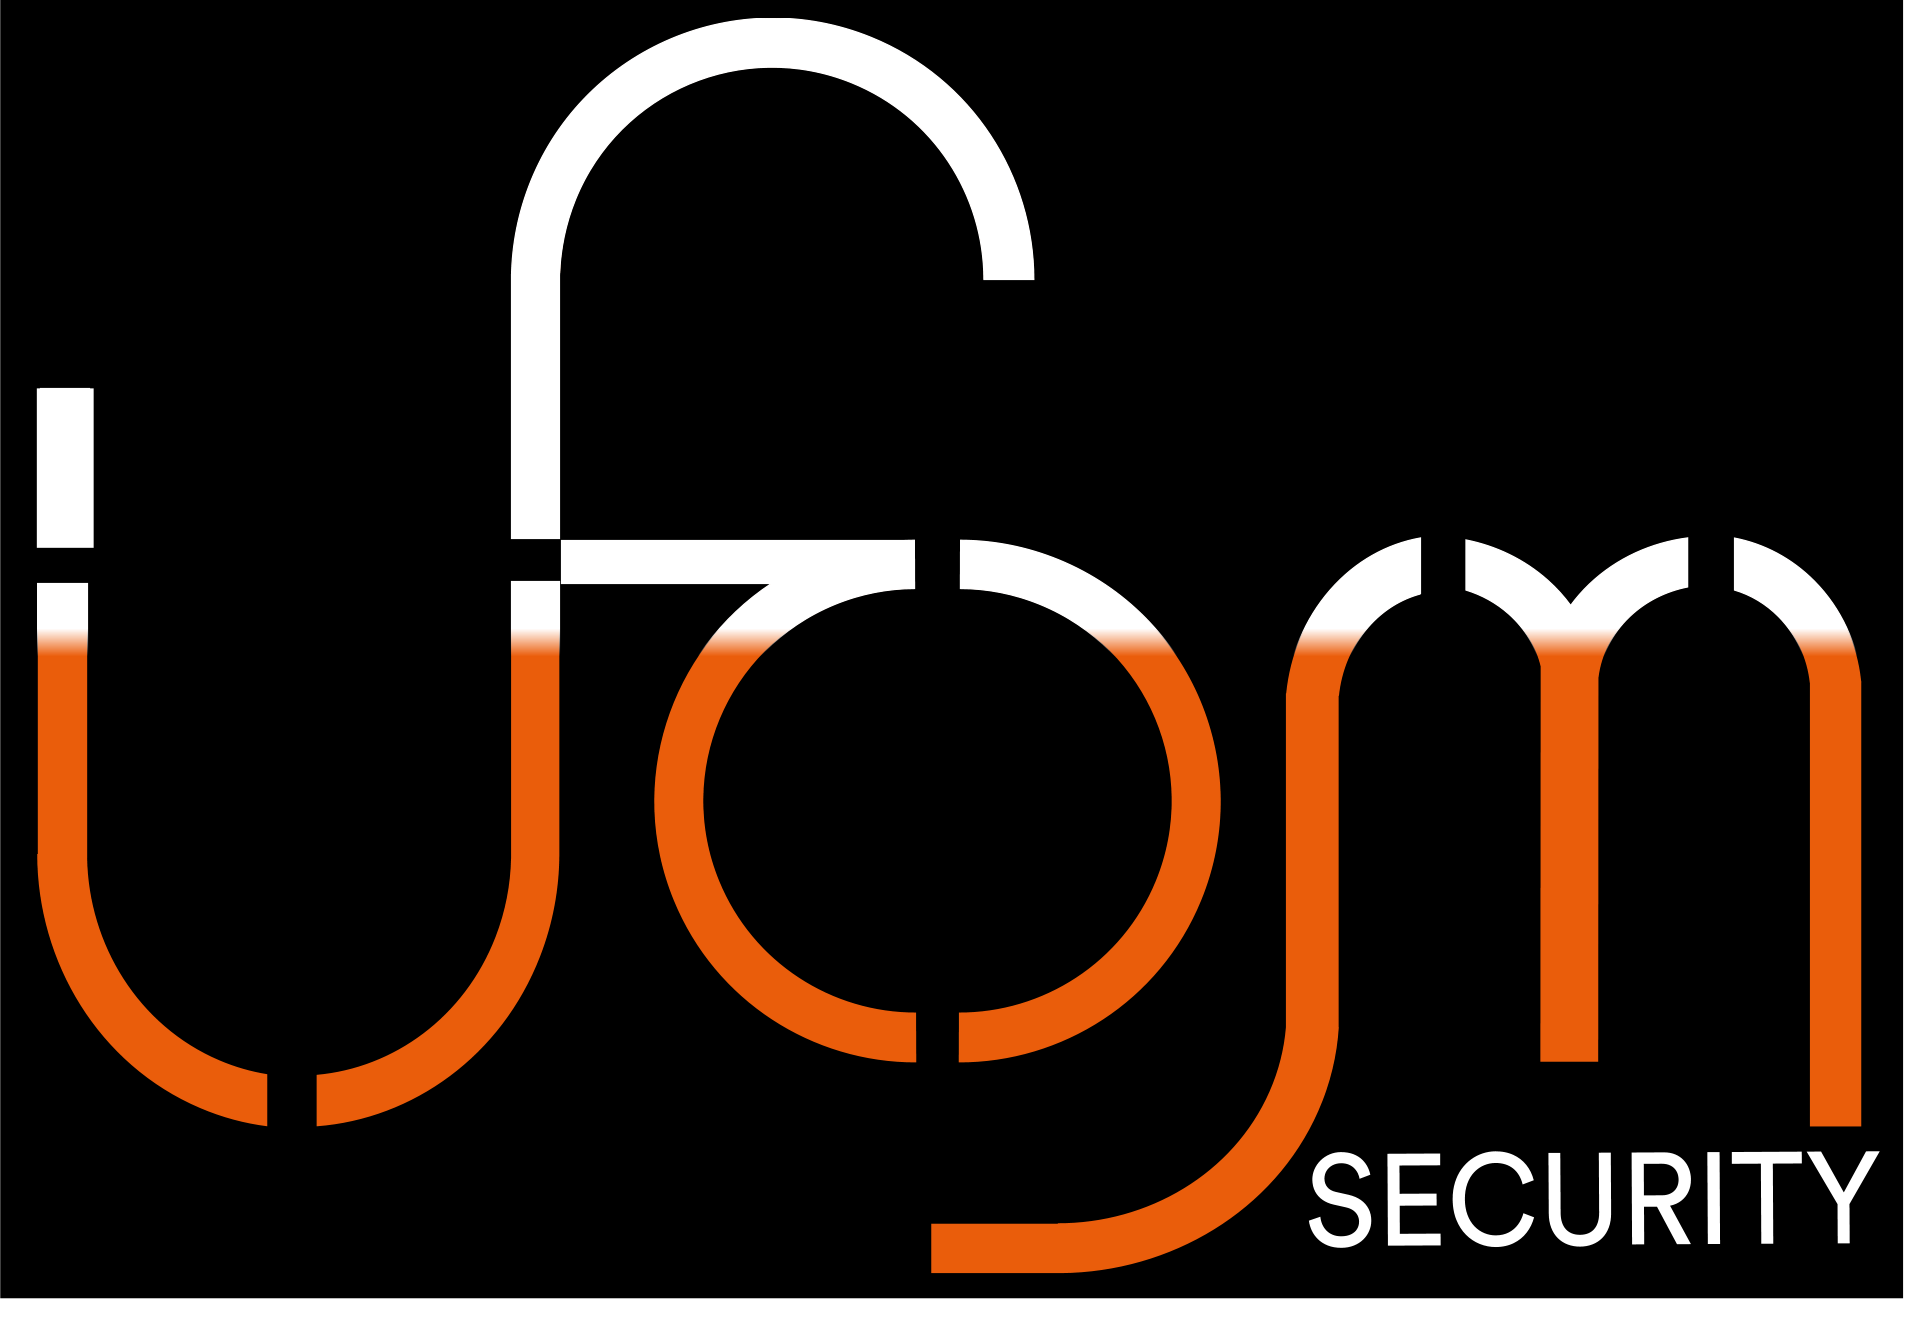 Ifom Security